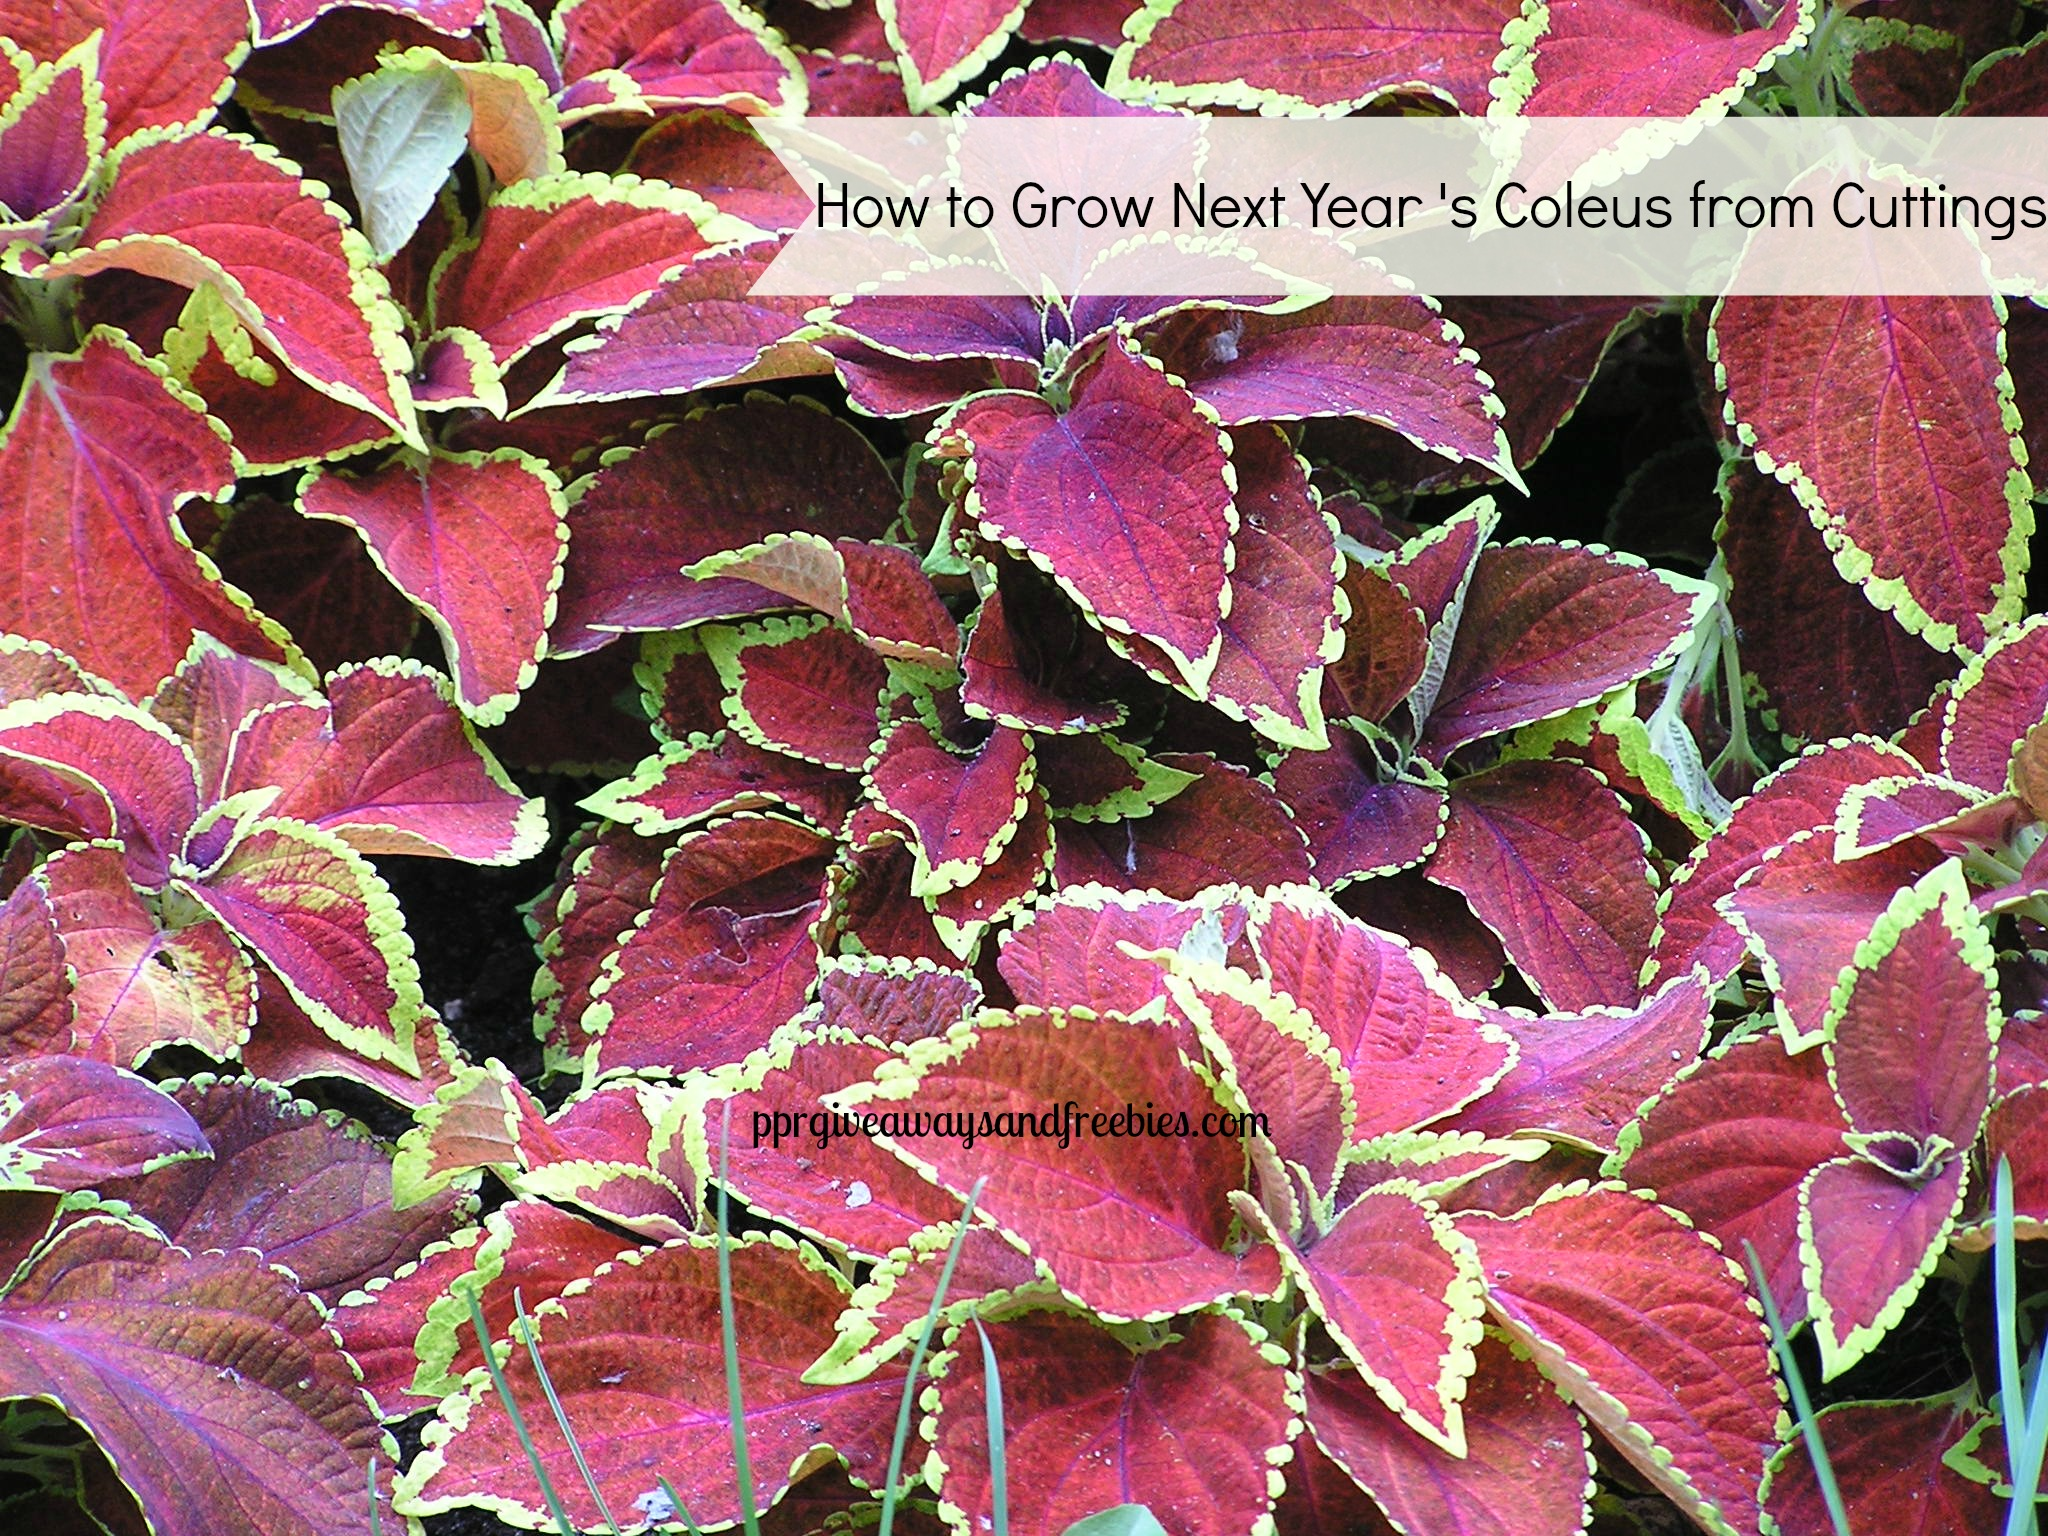 Grow Next Year's Coleus from Cuttings